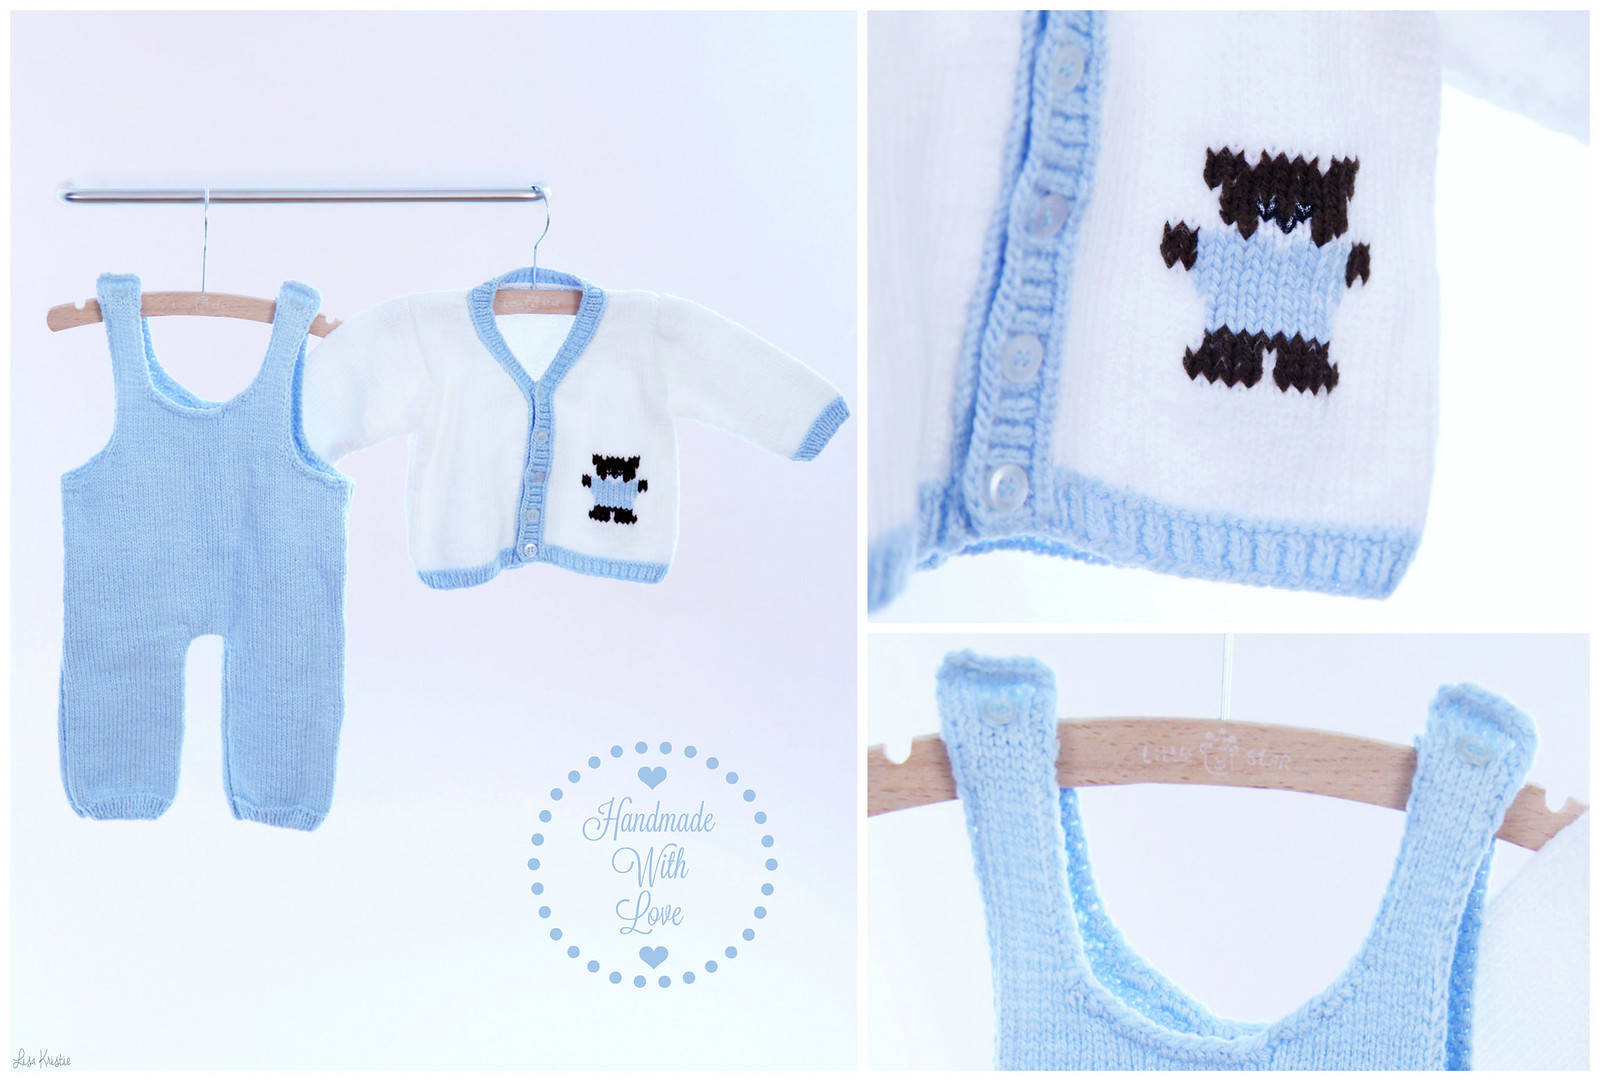 Baby boy white pale blue outfit handmade knitted diy craft teddy bear cardigan overall cute adorable with love home made knitting stitching sewing embroidery embellishment